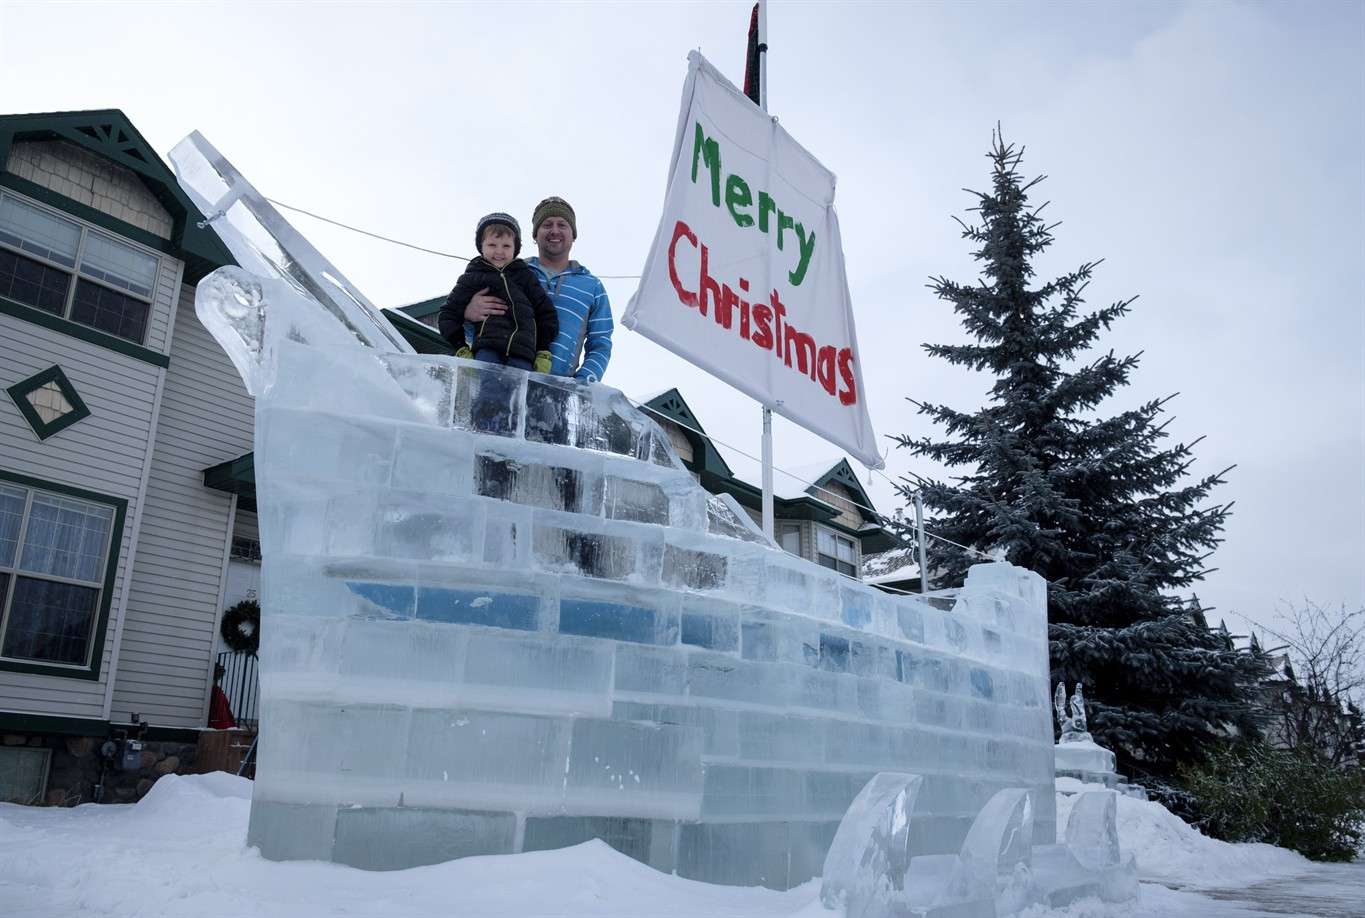 Donnie White And His Four Year Old Son Mateo Pose With The Ice Ship Built On Their Front Yard Using Frozen Blocks Of From A Nearby Pond In Red